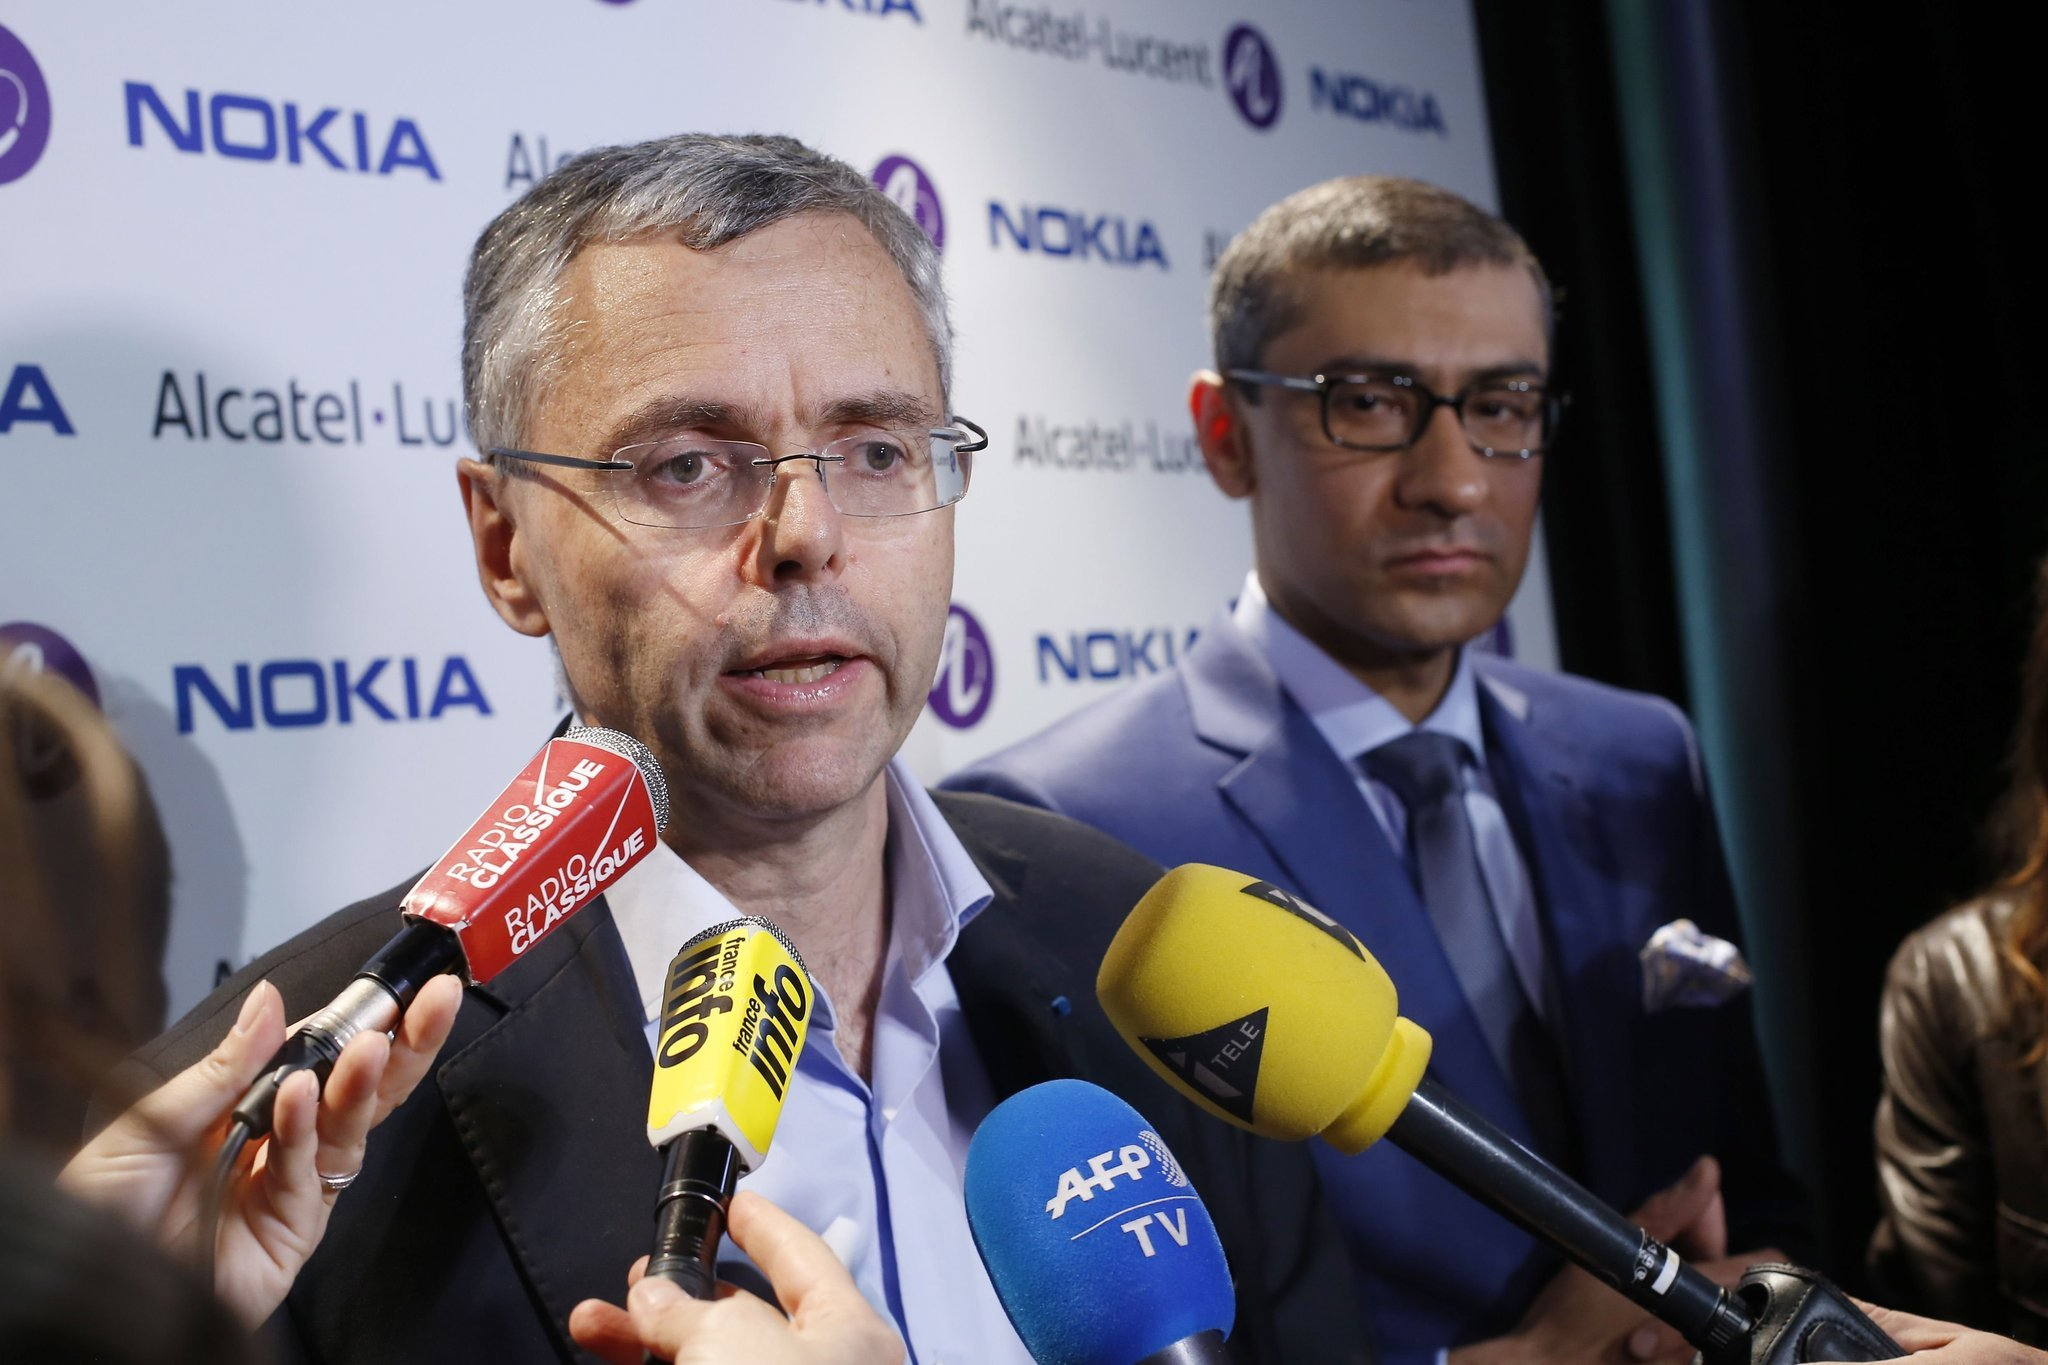 Nokia aims to become telecom equipment leader with Alcatel ...